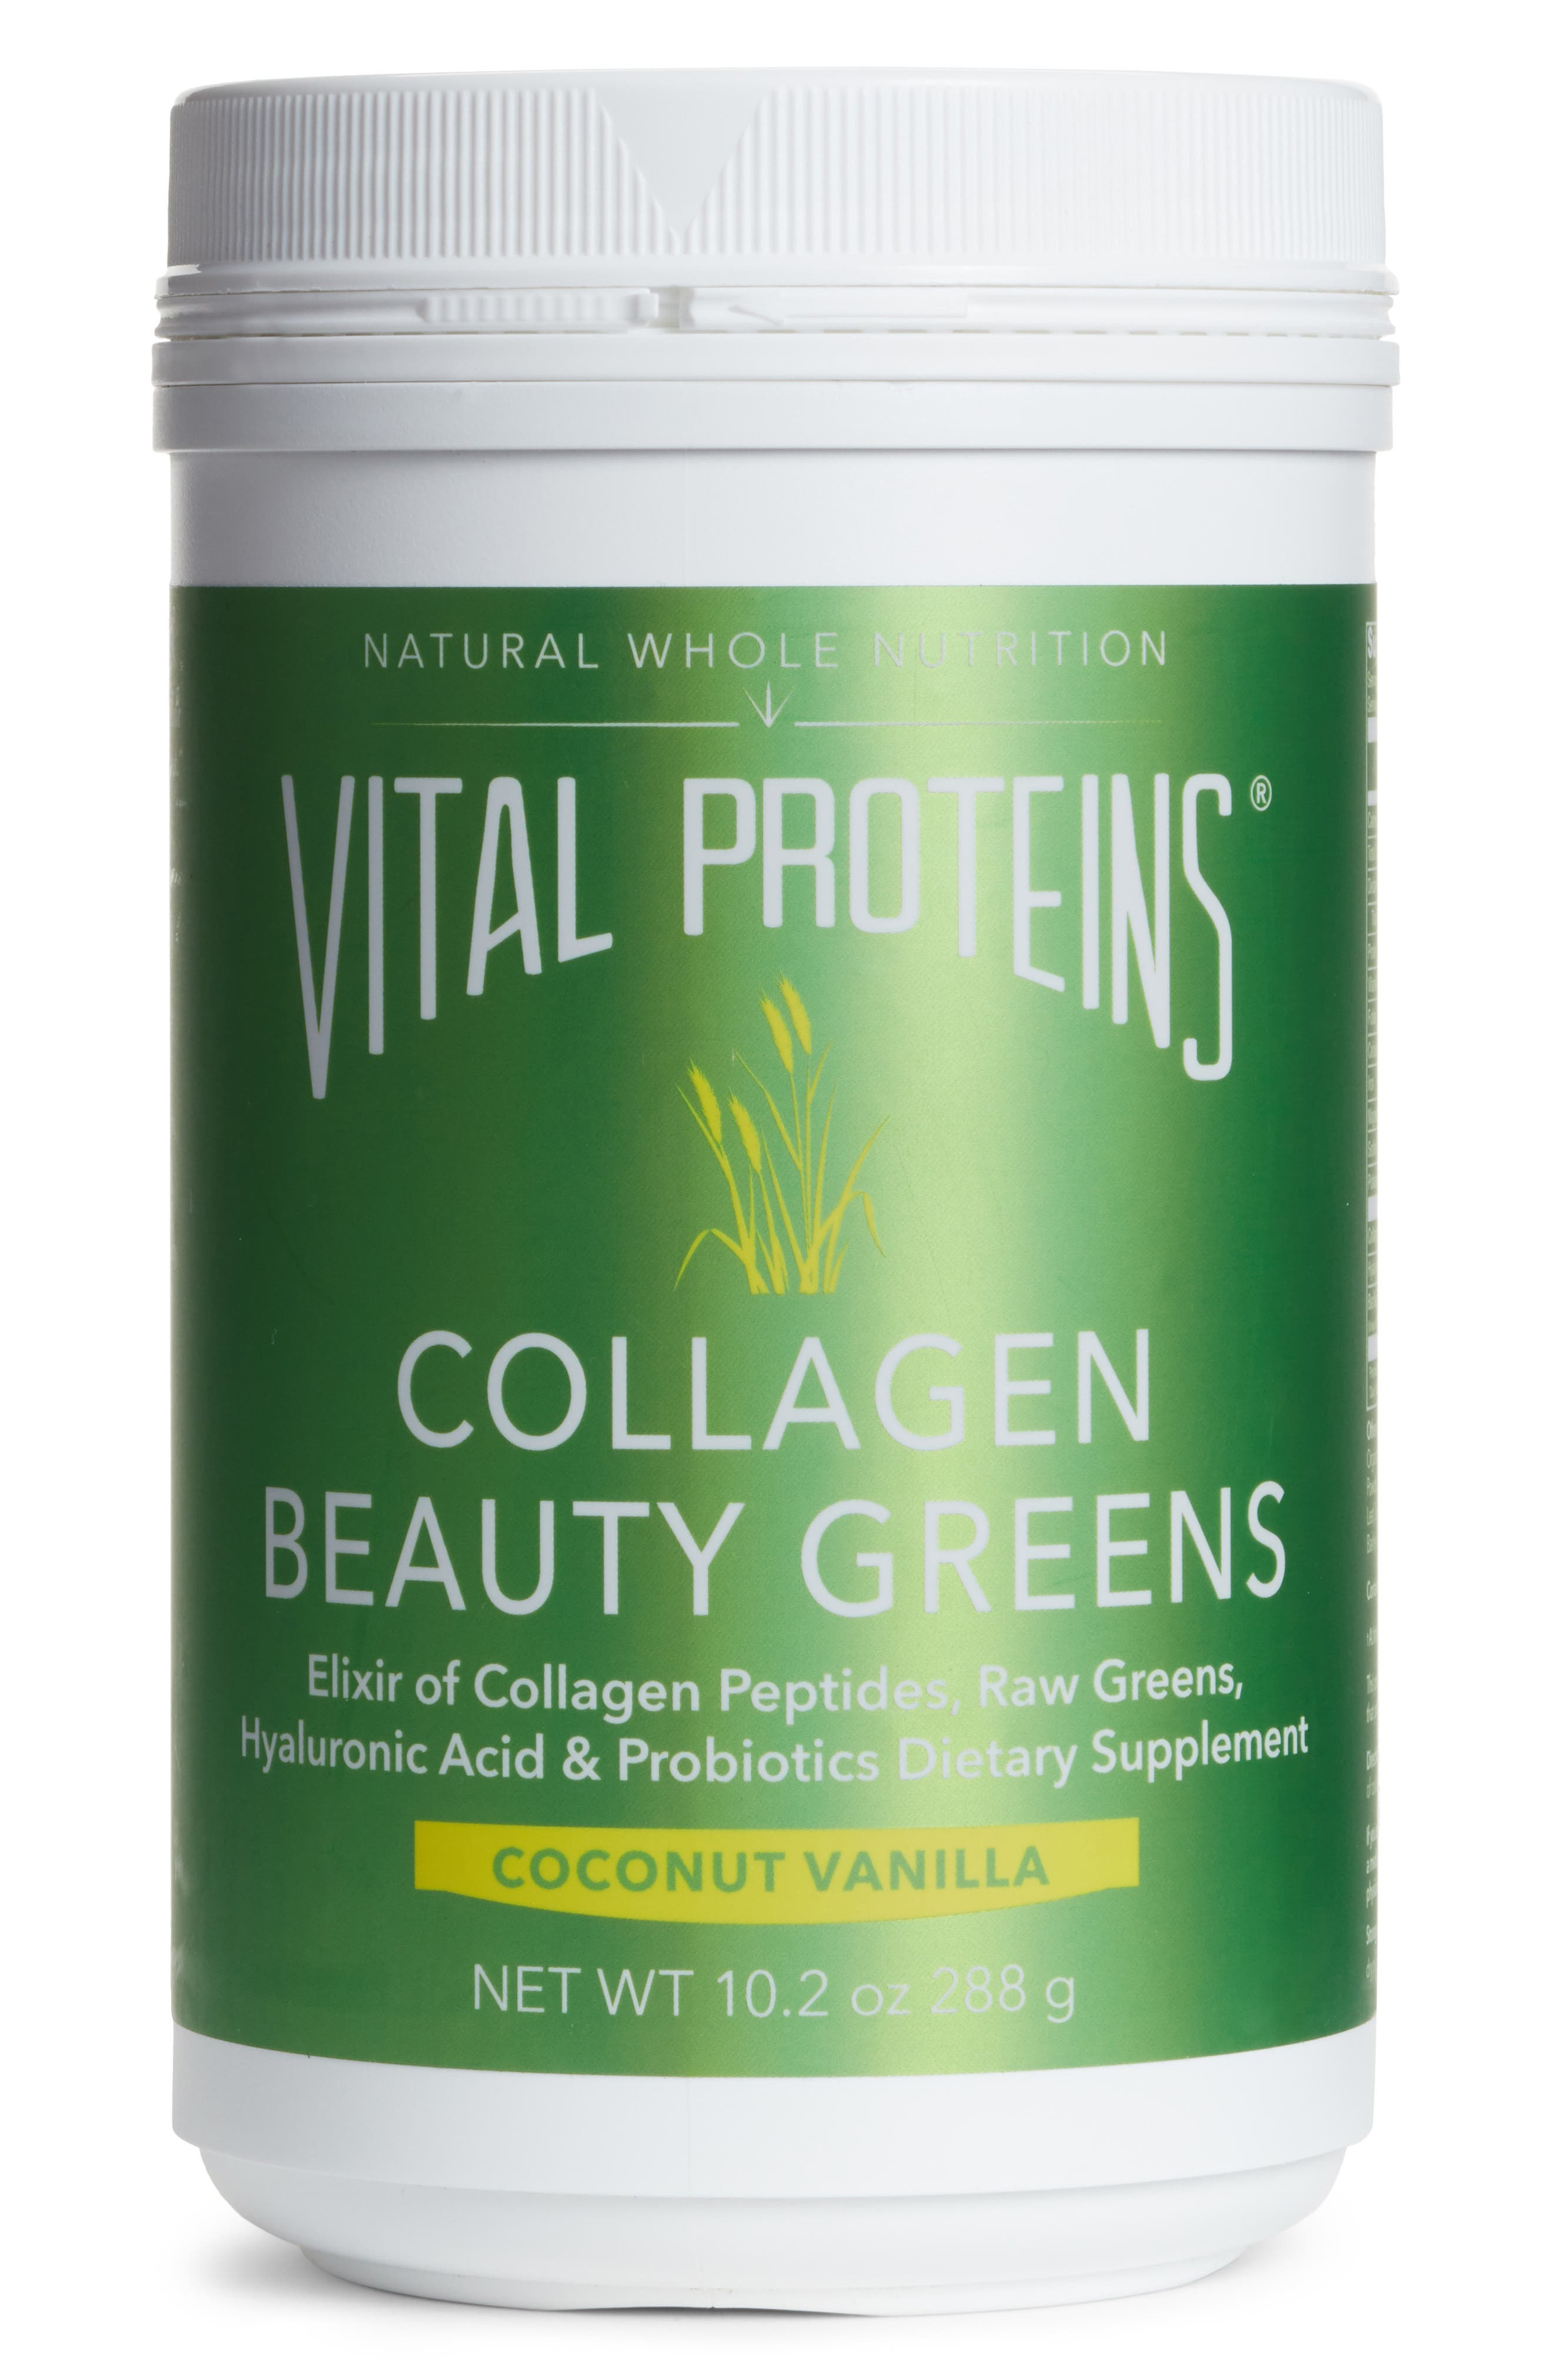 Collagen Beauty Greens Dietary Supplement,                             Main thumbnail 1, color,                             960